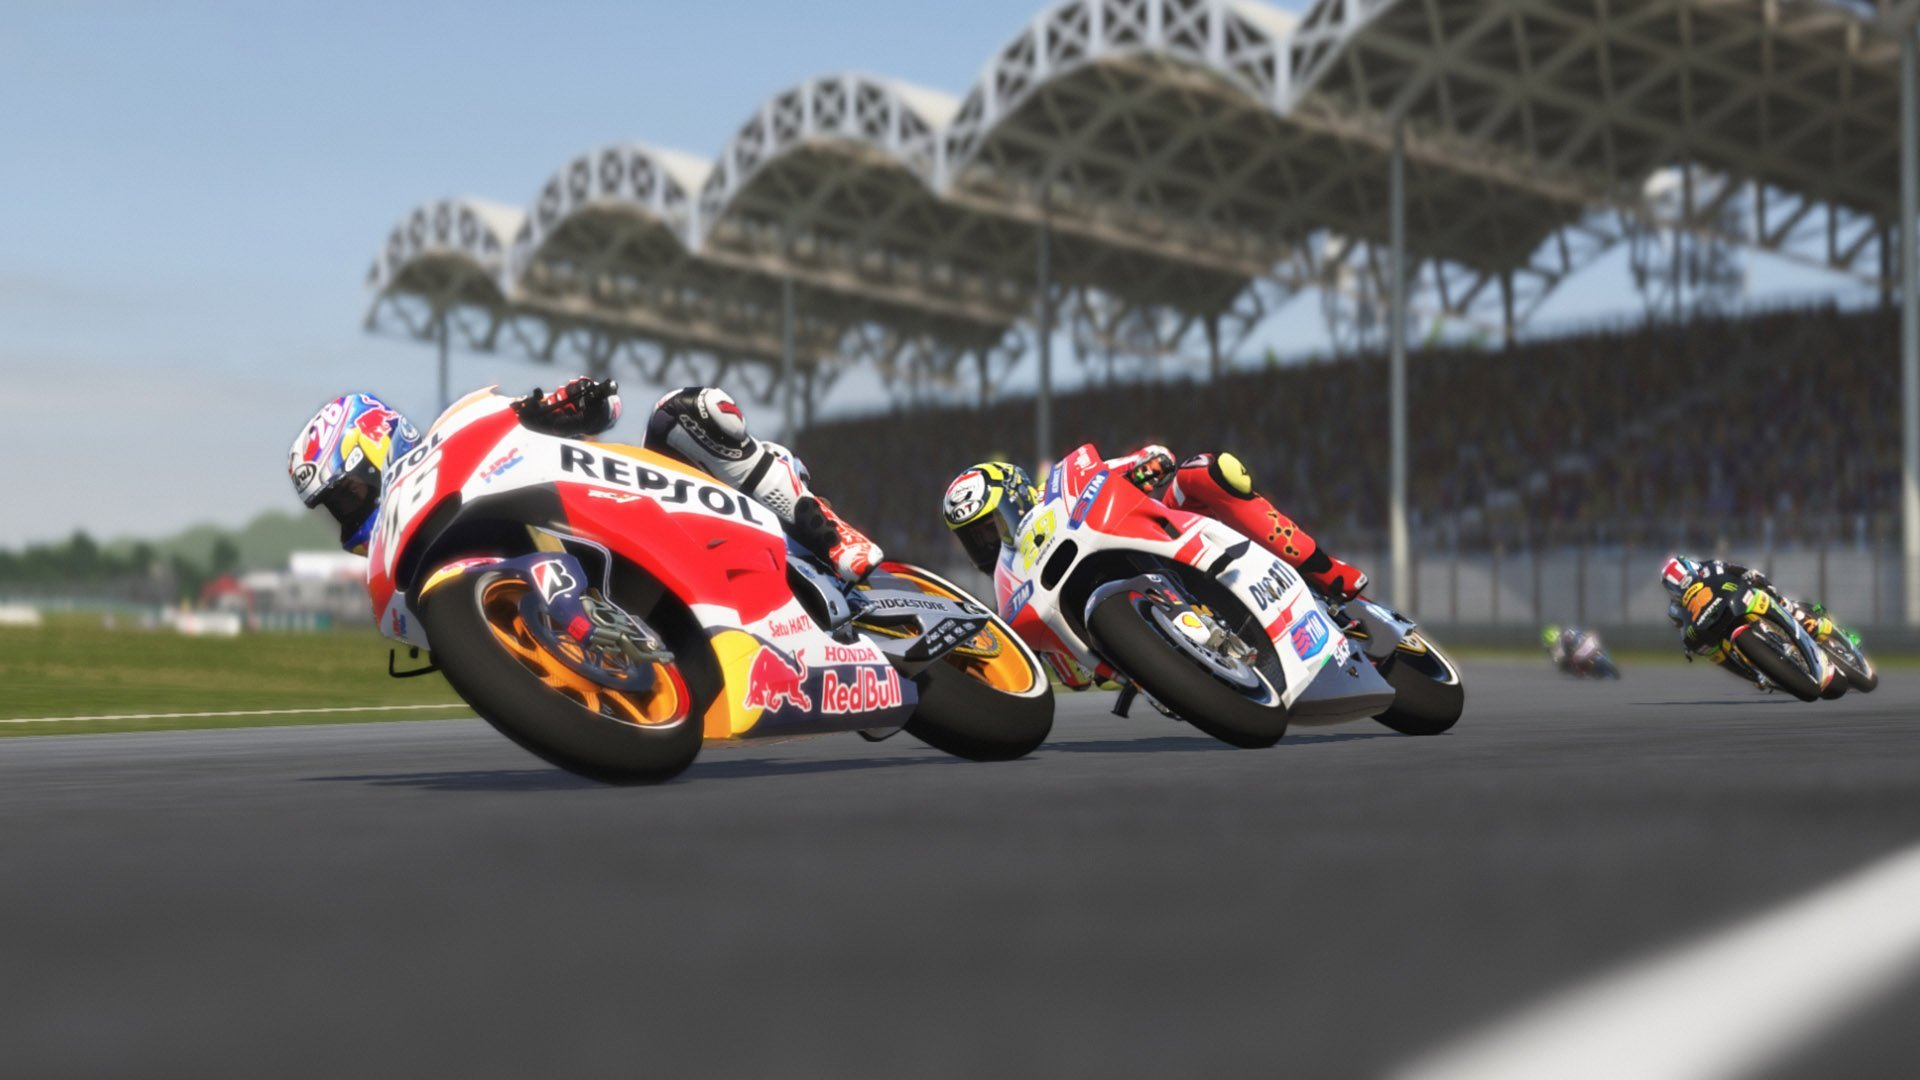 Motogp 2015 Juego Ps4 | MotoGP 2017 Info, Video, Points Table - photo#49